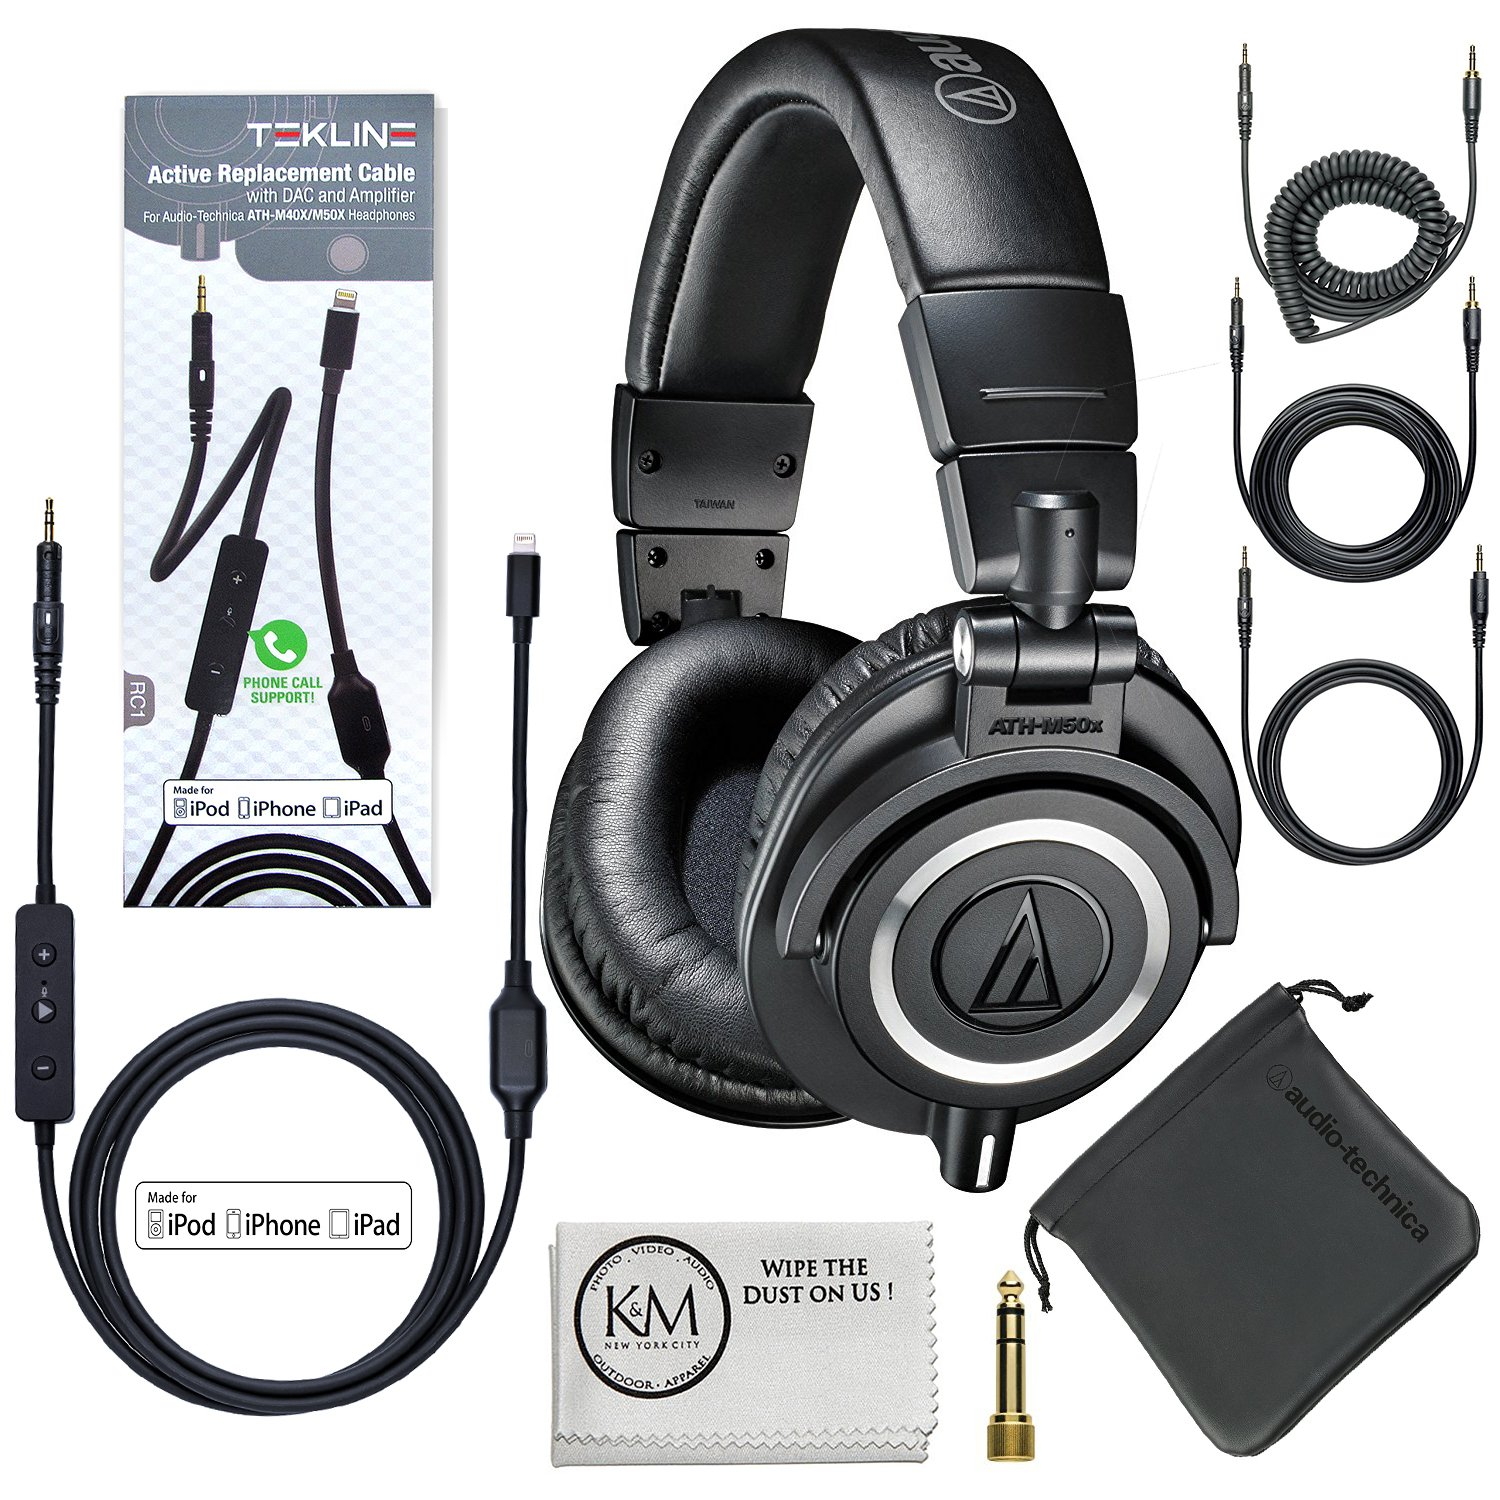 Audio-Technica ATH-M50x Professional Monitor Headphones (Black) + Tekline Iphone Lightning Replacement Cable